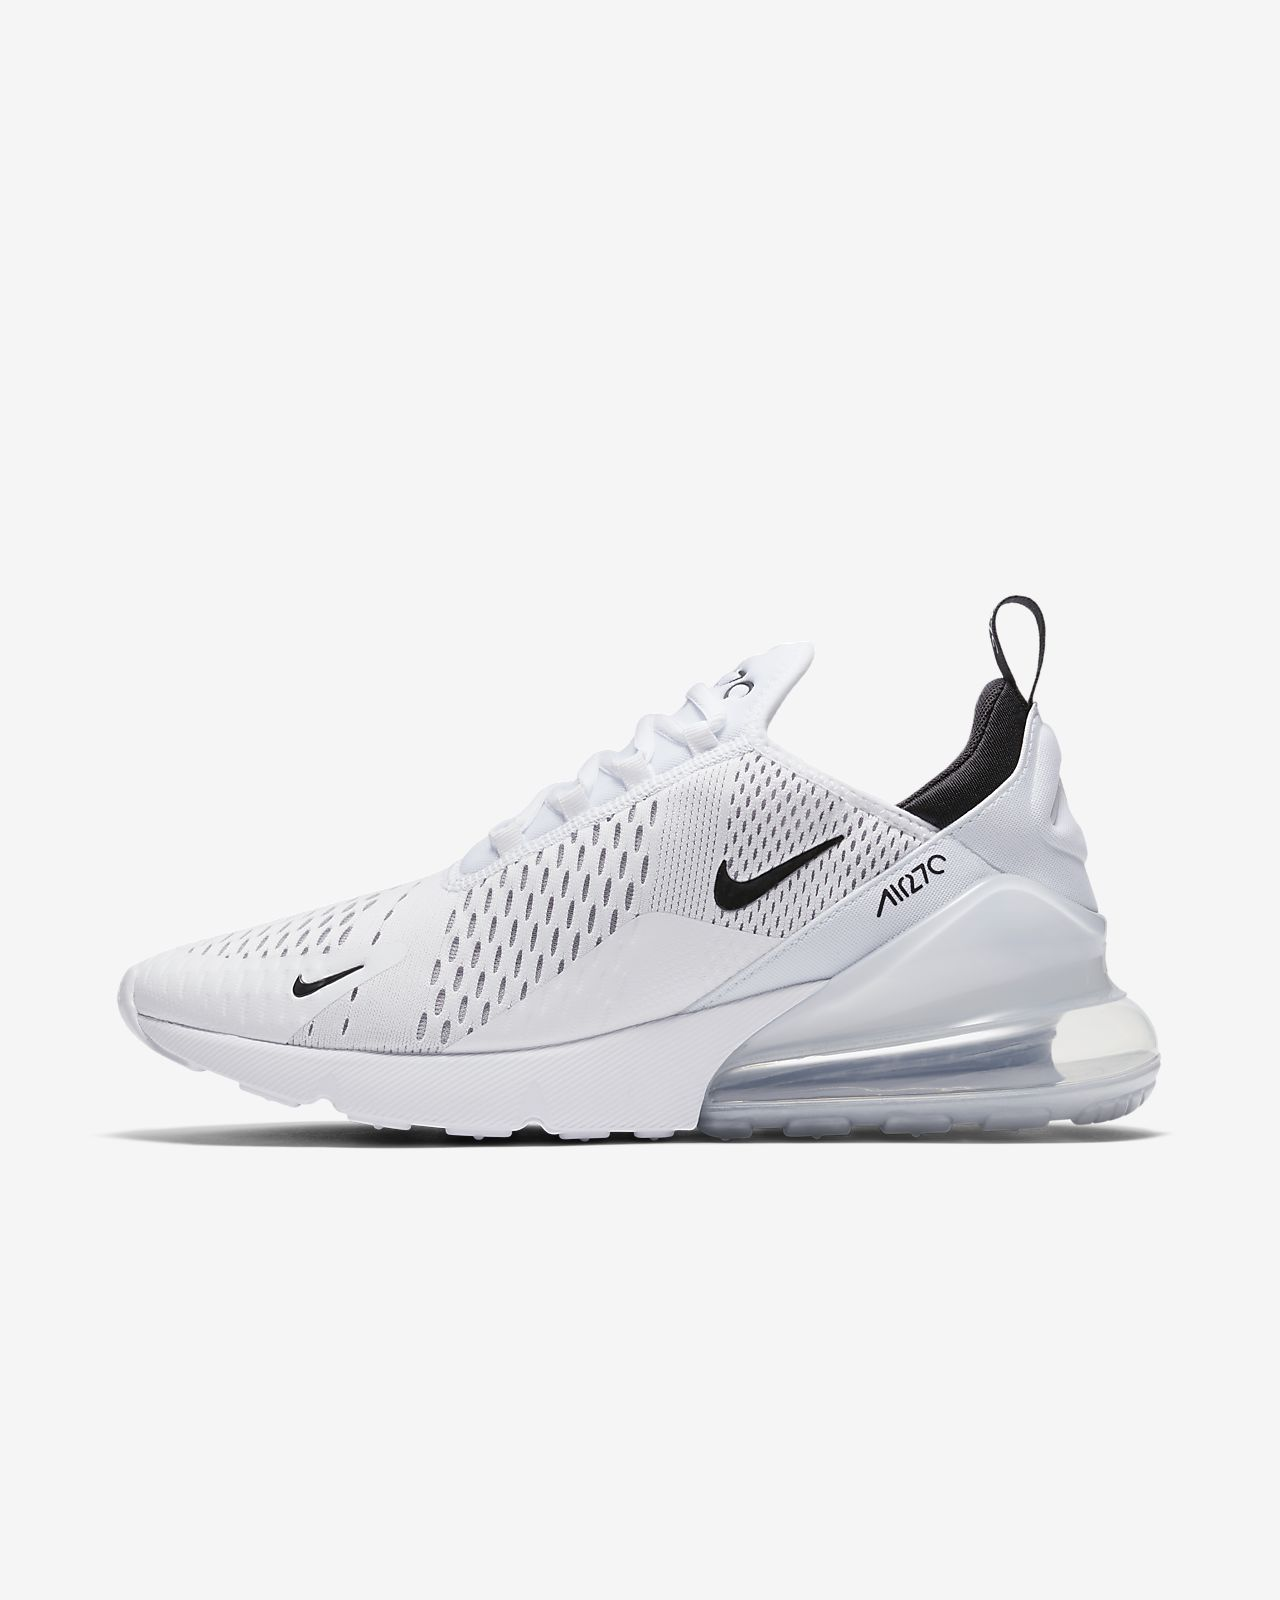 Nike Air Max 270   Nike Sneakers Online at Best Prices ... 2dc285f4b